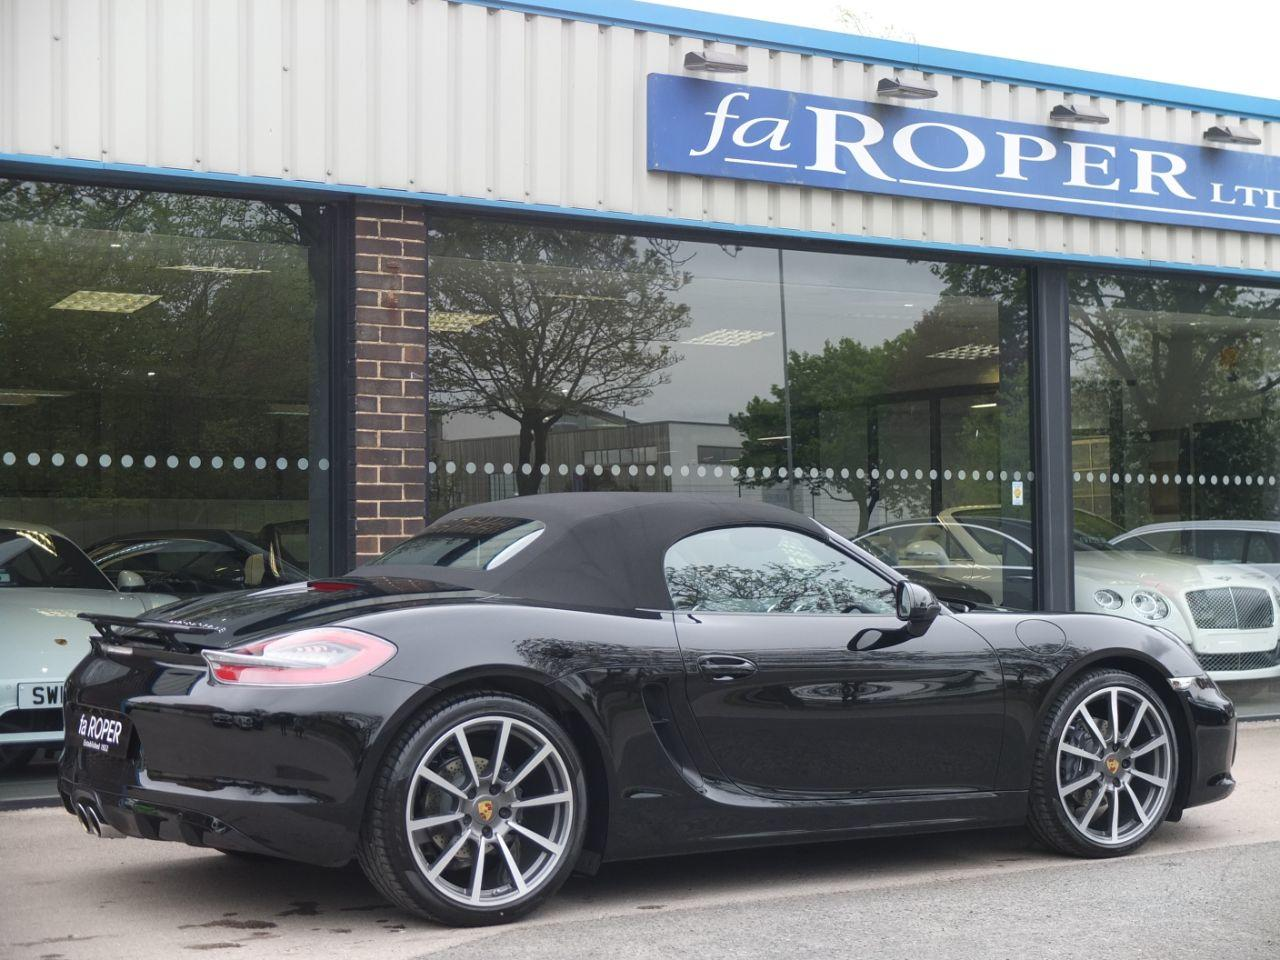 Porsche Boxster 2.7 Black Edition PDK Convertible Petrol Jet Black Metallic